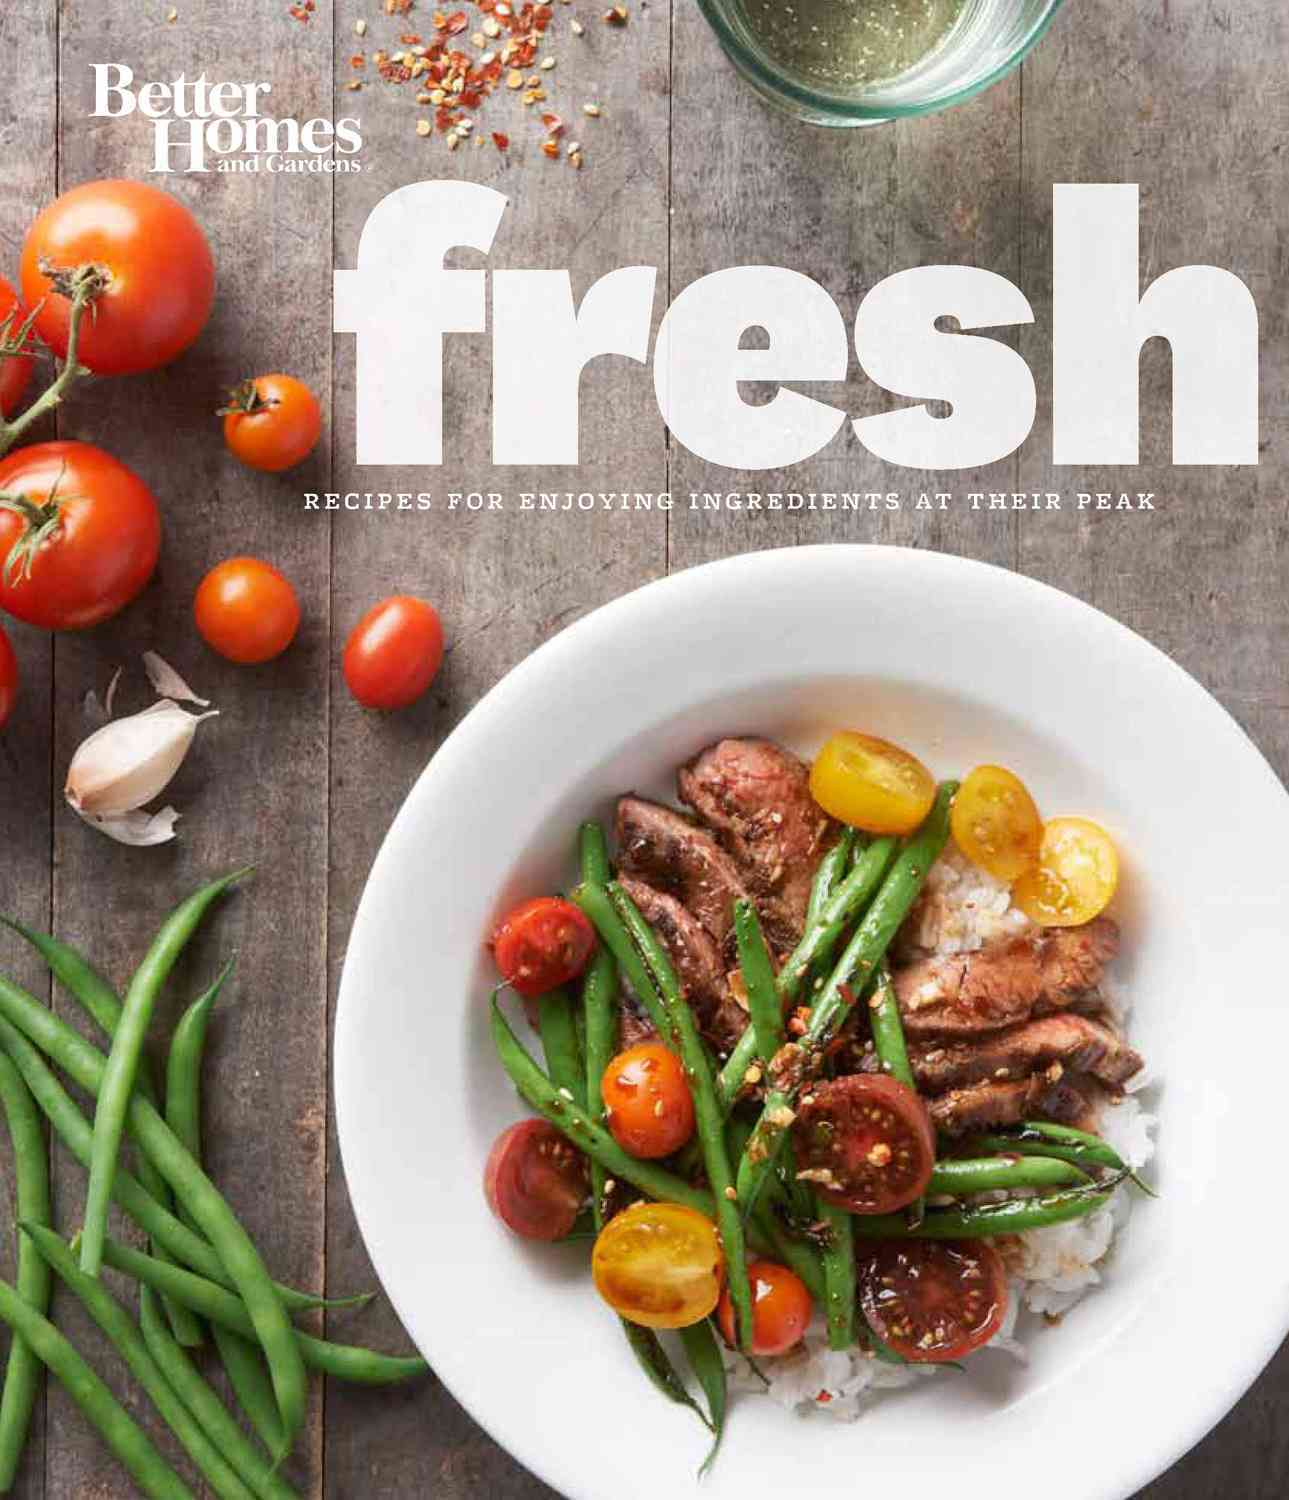 Better Homes and Gardens Fresh Cookbook By Better Homes and Gardens Books (COR)